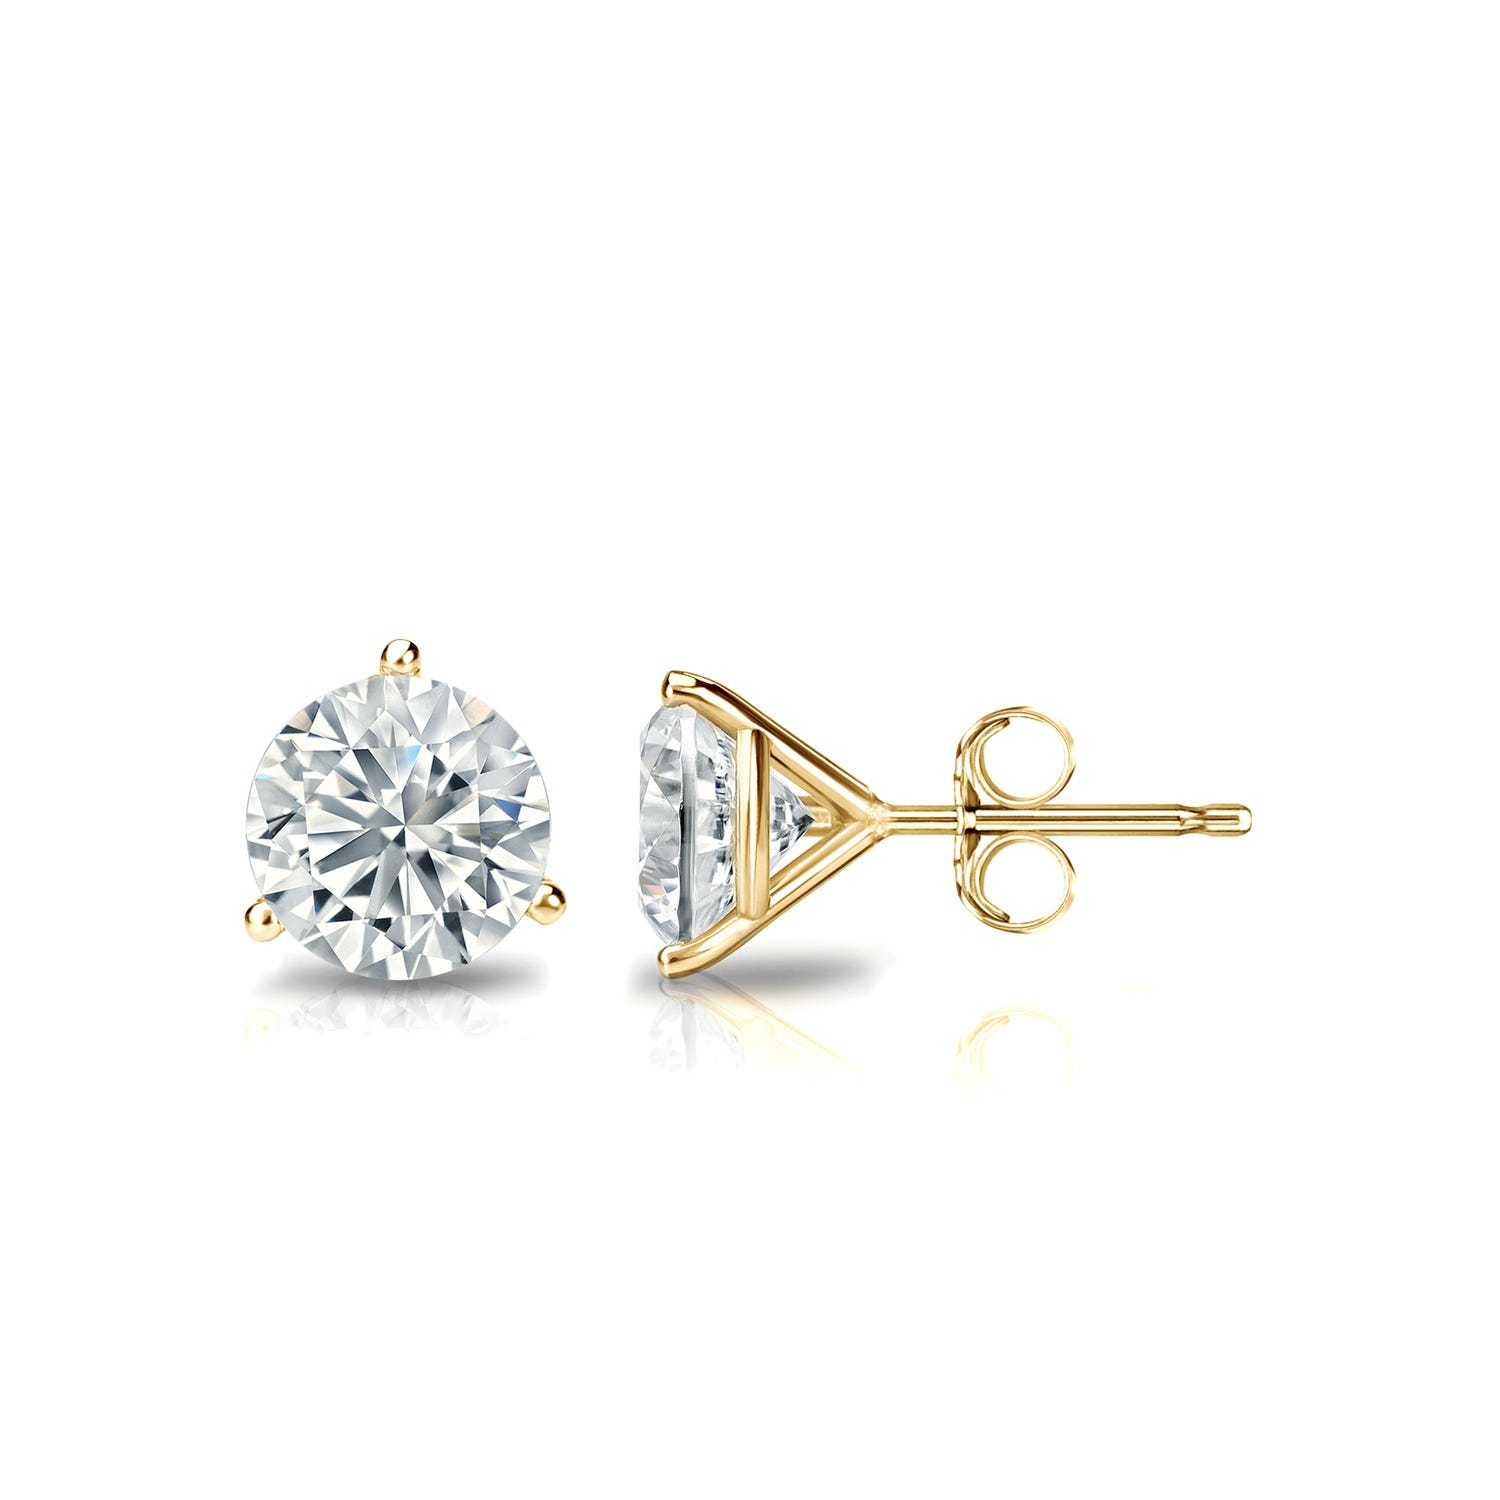 3/4 CTTW Round Diamond Solitaire Stud Earrings IJ SI1 in 14K Yellow Gold IGI Certified 3-Prong Setting